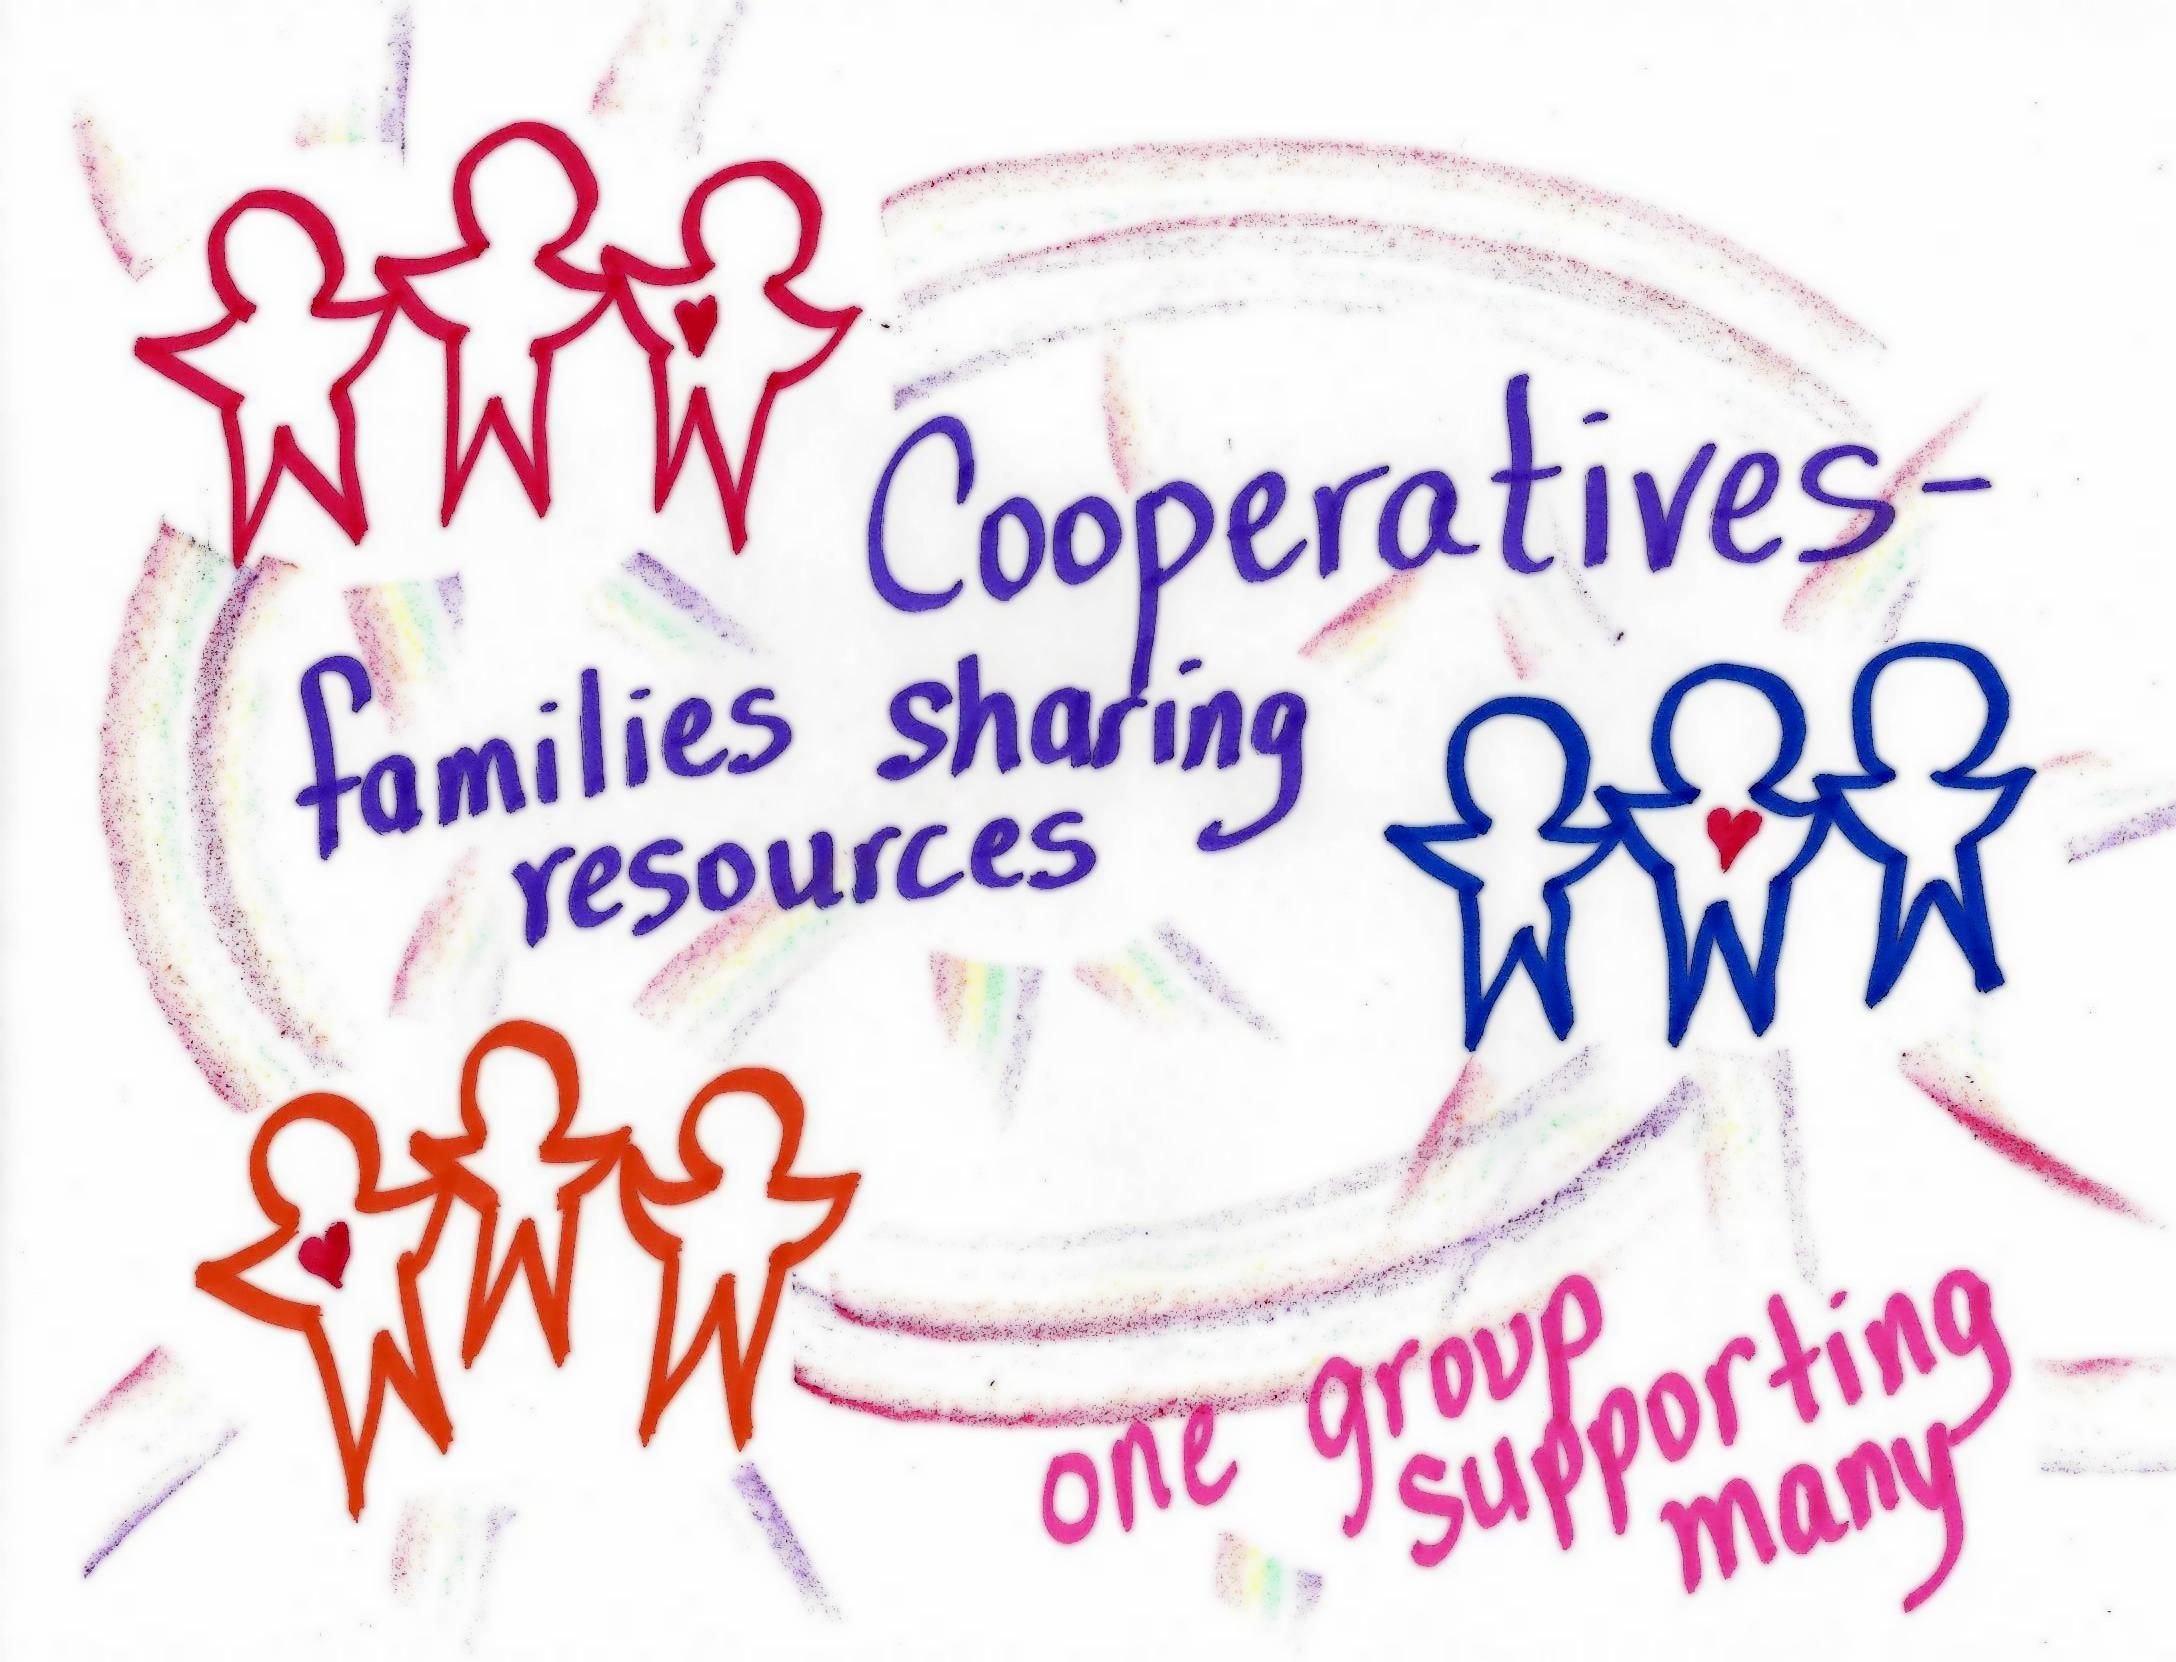 Learn about Cooperatives